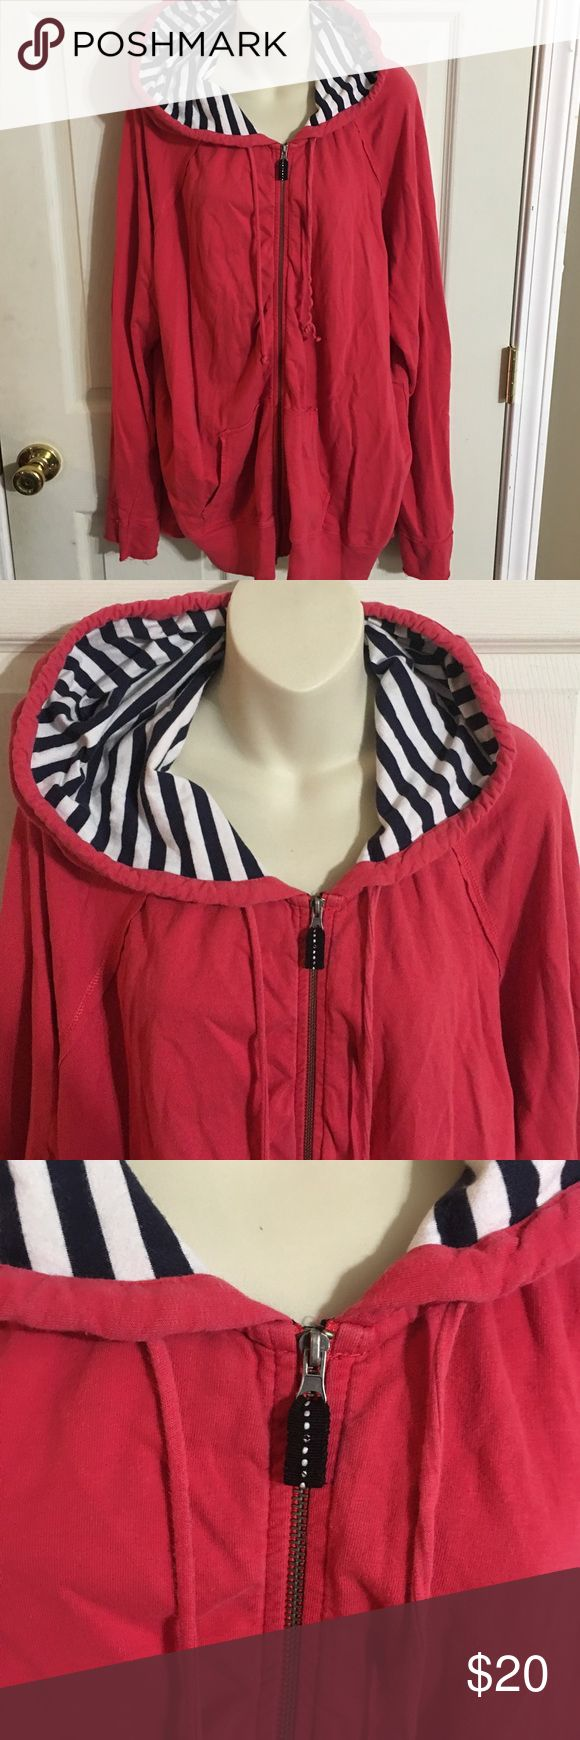 Merona Nautical Zip Up Jacket Women's Merona plus size Nautical zip up jacket size 24/26W in gently used condition.  There is minor wash wear noted.  No stains, tears or rips. Merona Jackets & Coats Utility Jackets